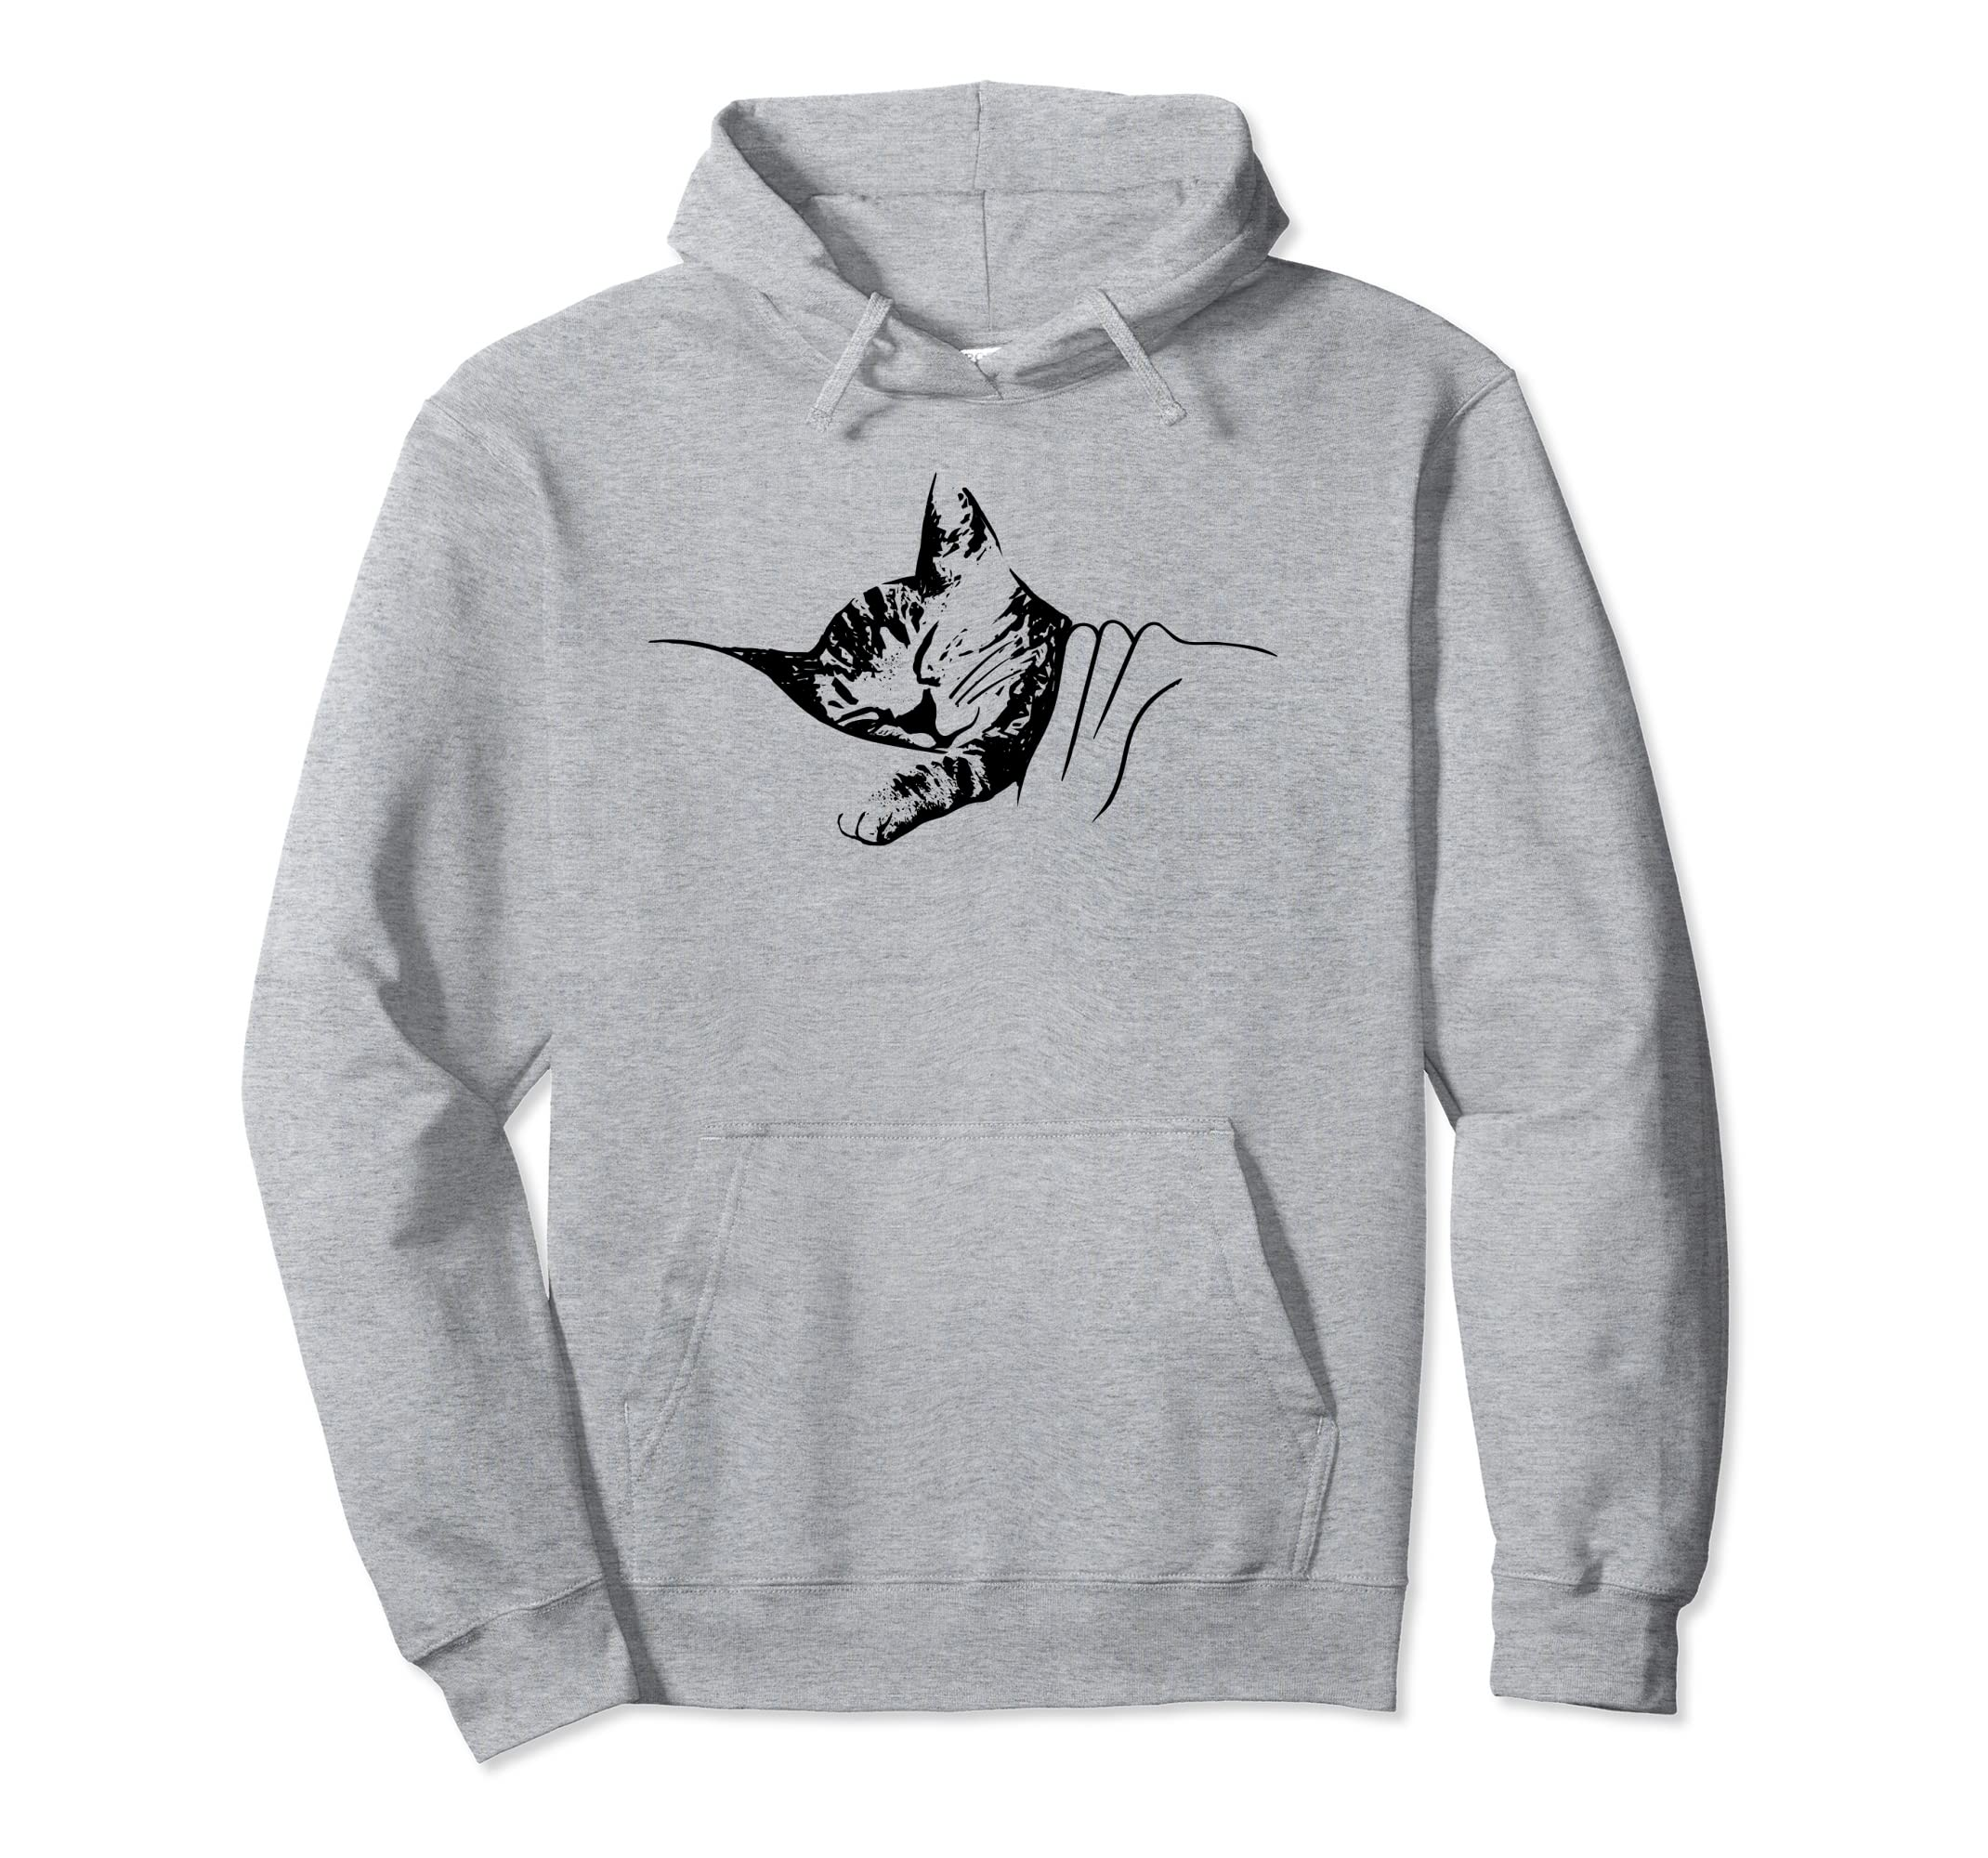 300e67345 Amazon.com  Cute Cat Hoodie - Sleeping Kitten - Cat Lover Gift  Clothing